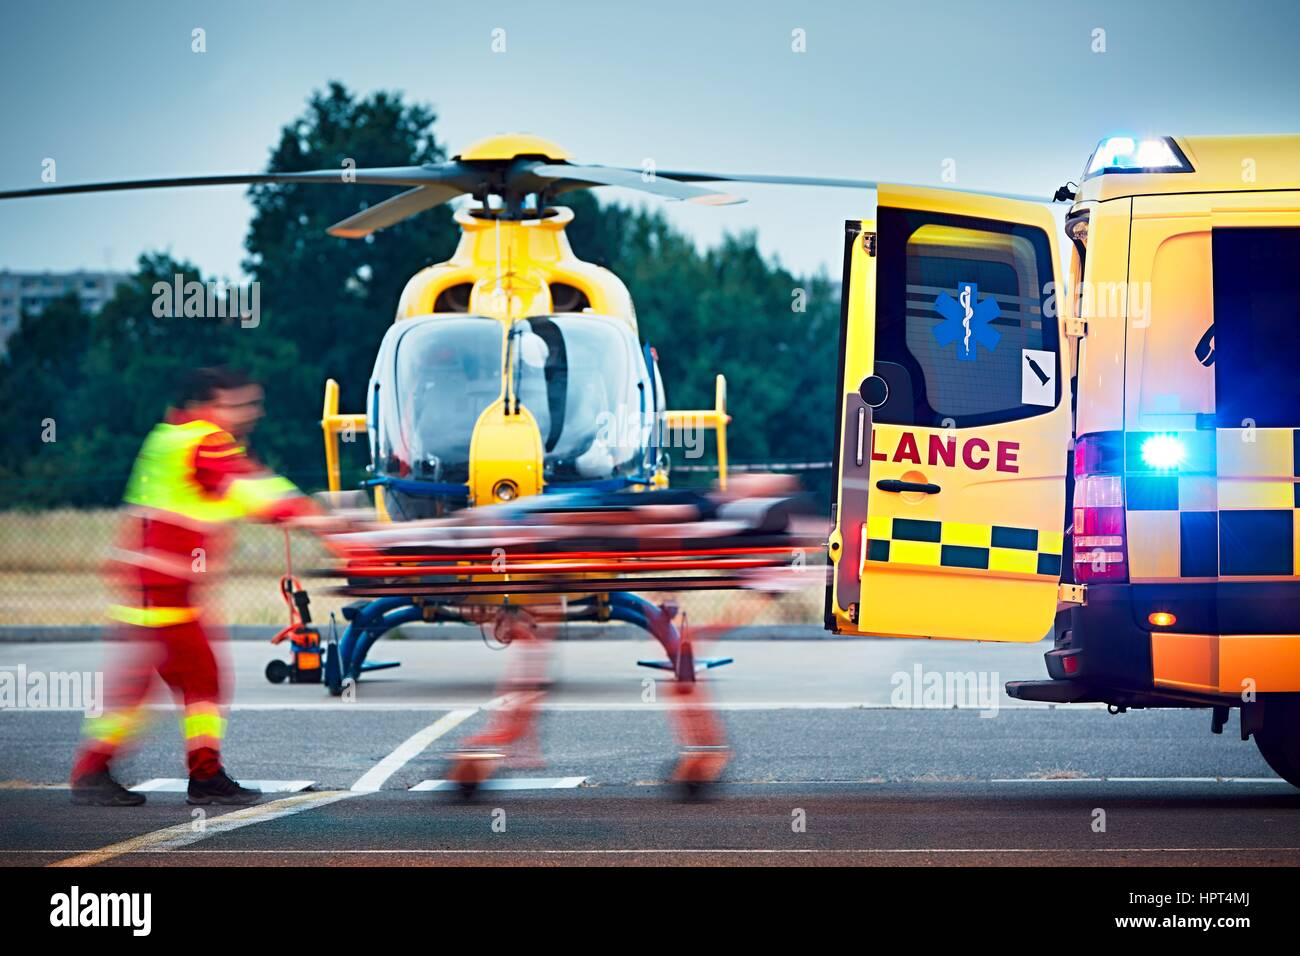 Cooperation between air rescue service and emergency medical service on the ground. Paramedic is pulling stretcher - Stock Image